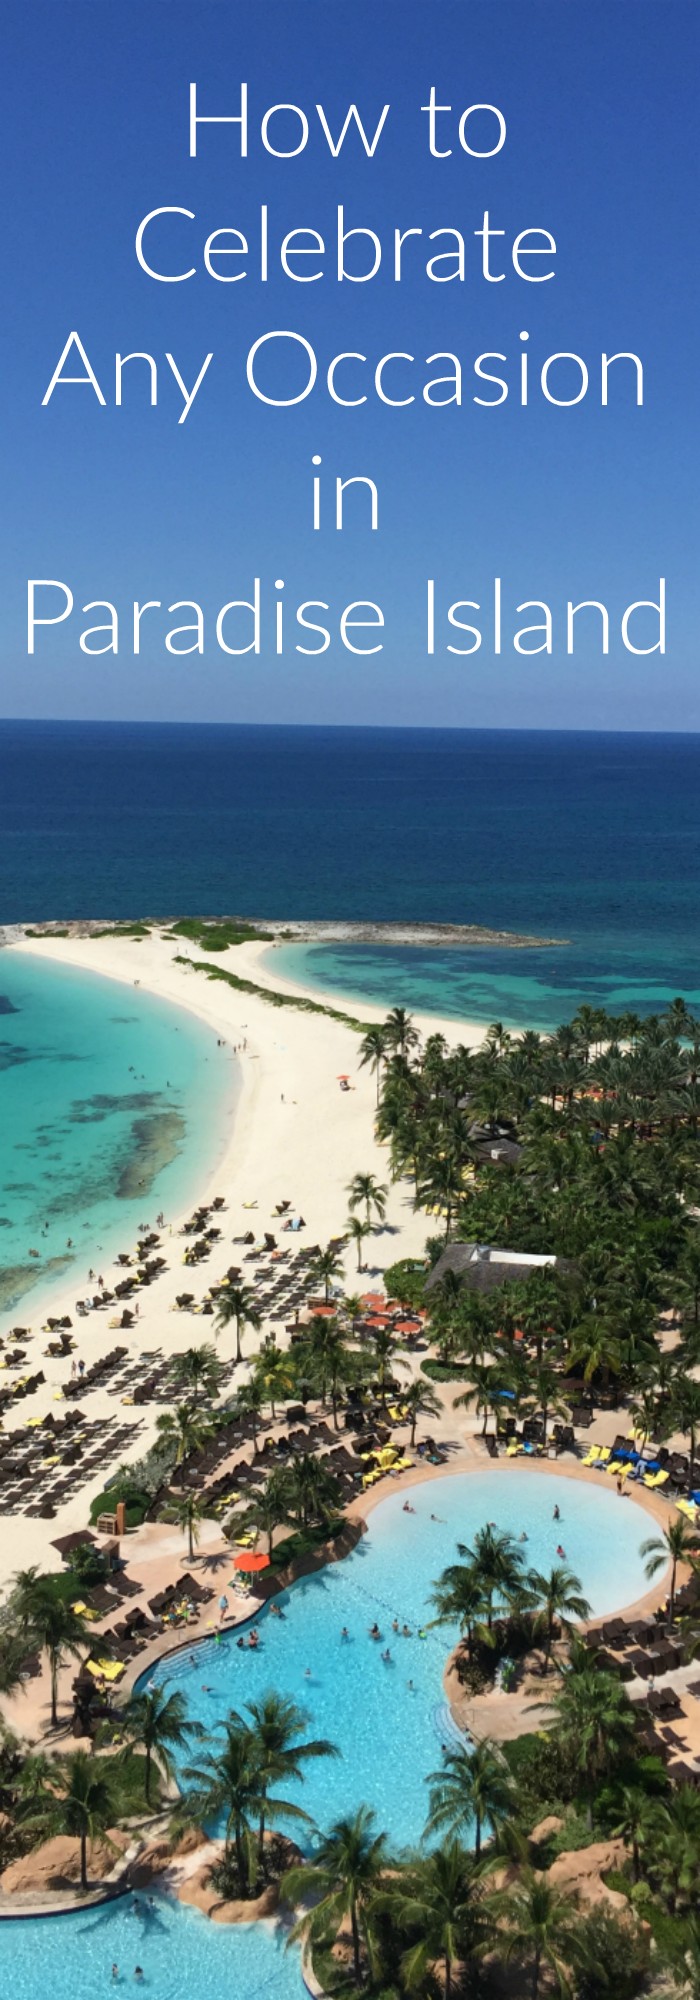 Planning a trip to the Caribbean? Read our guide on How to Celebrate Any Occasion in Paradise. More at CleverlyMe.com